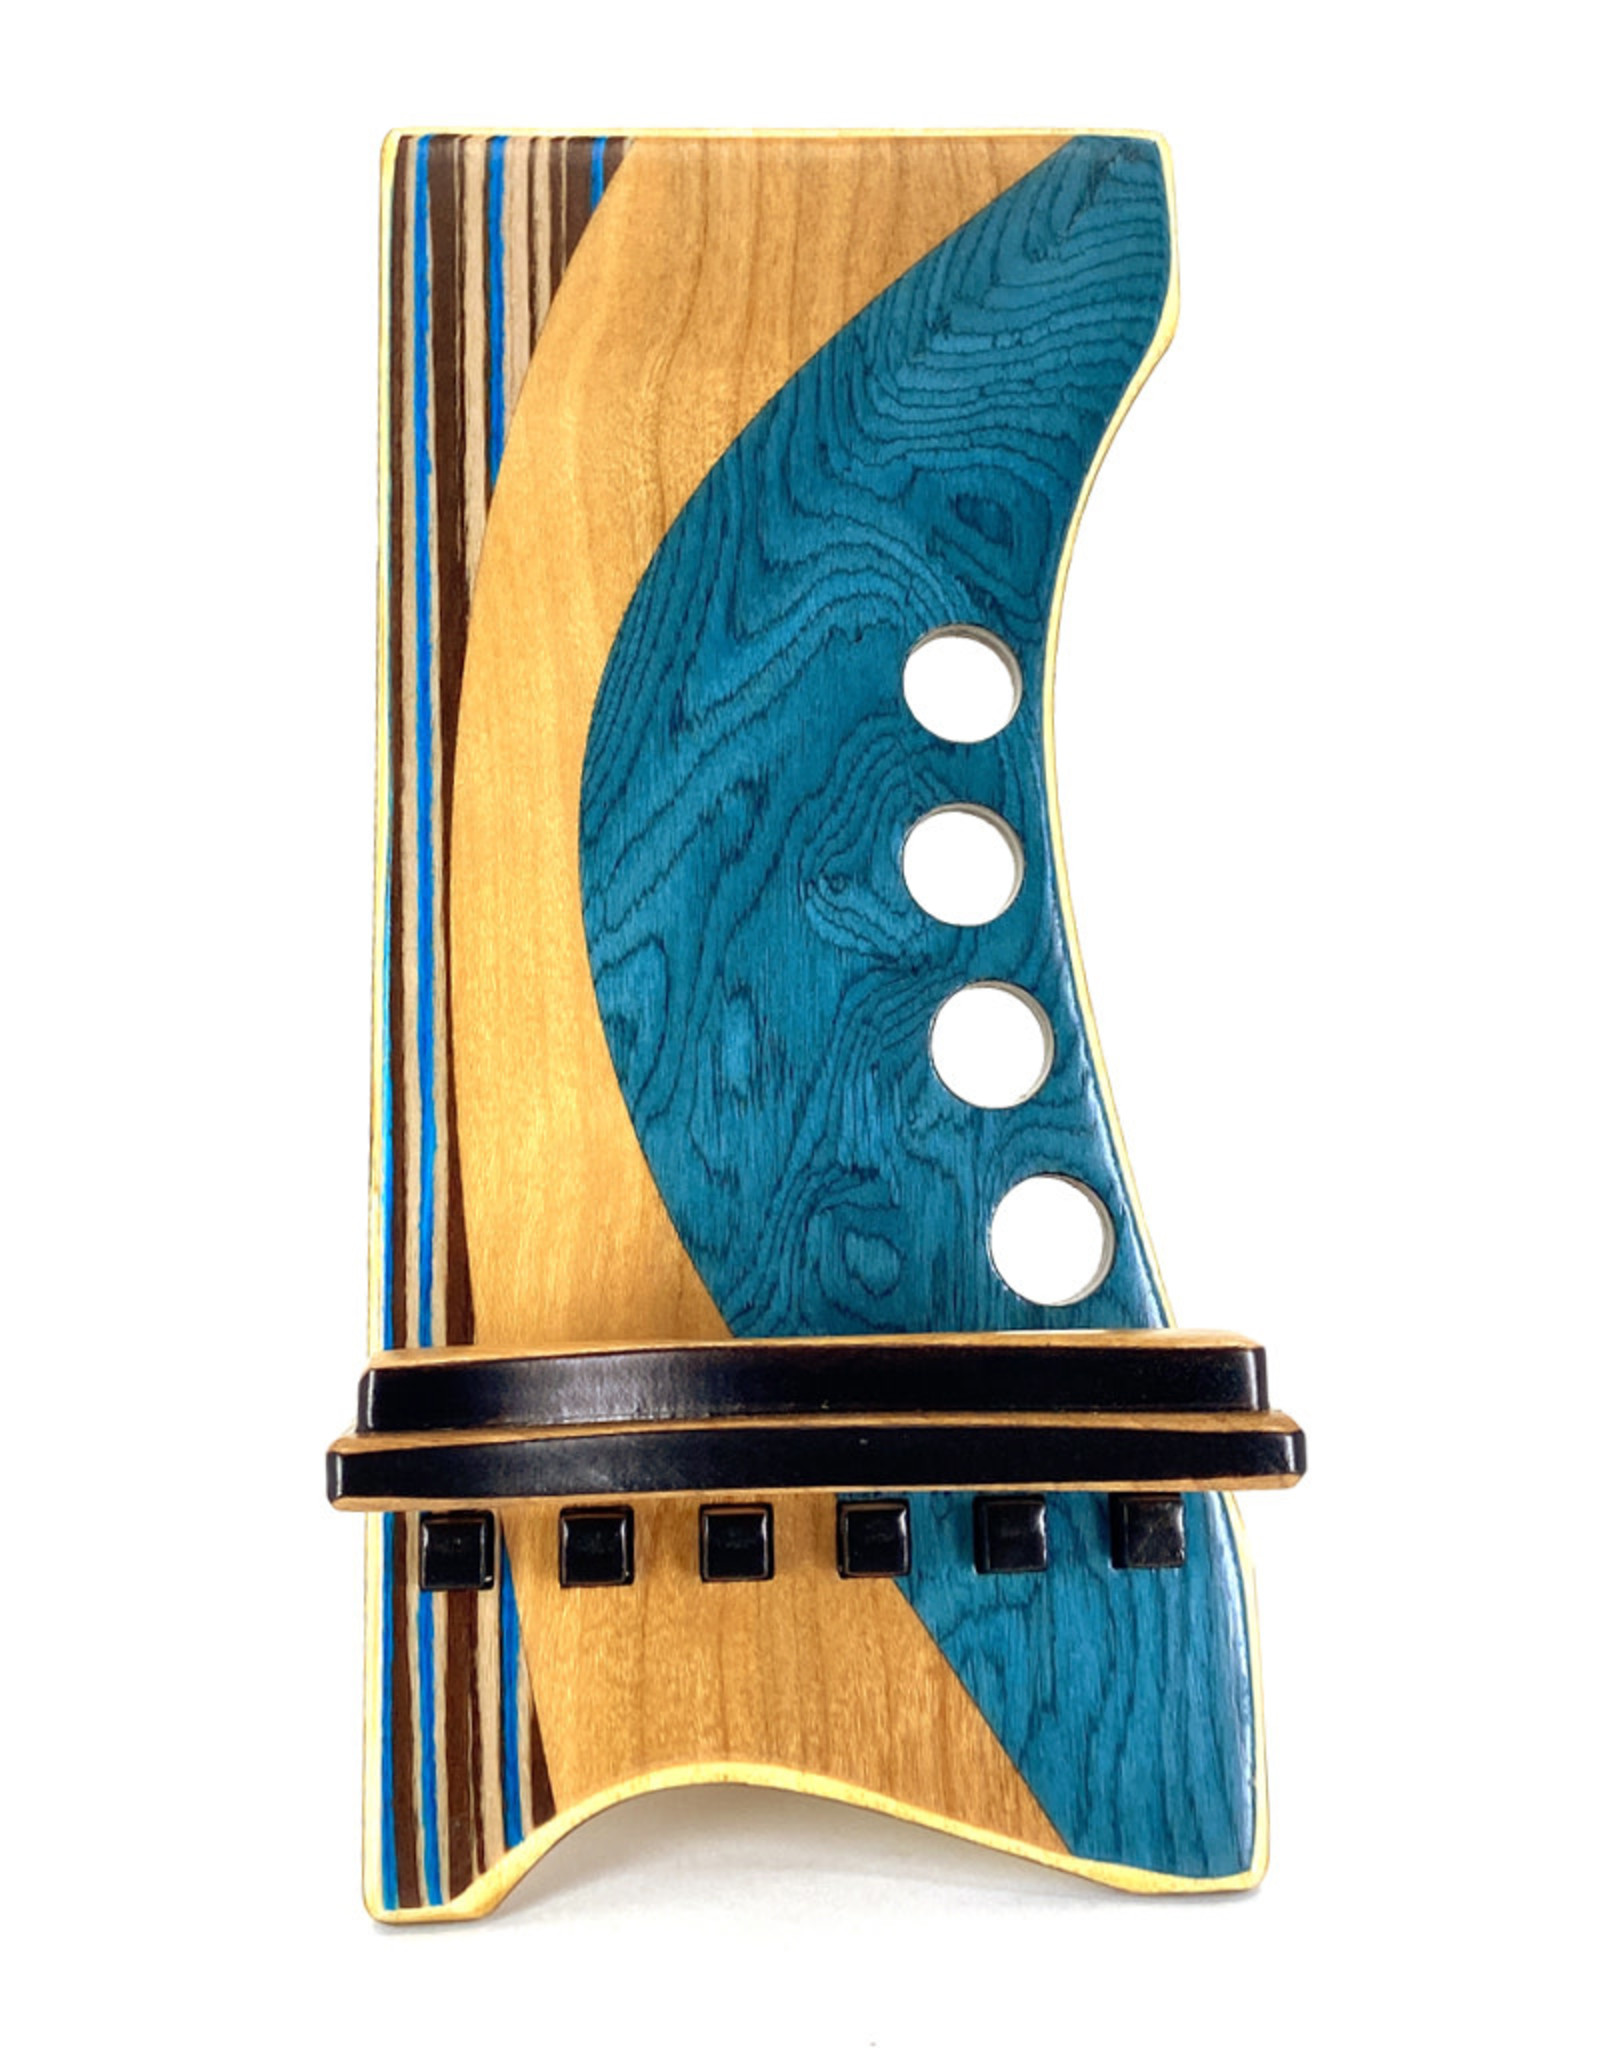 LOST ART WOODWORKS BLUE STRIPED V MARQUETRY INLAID PHONE STAND